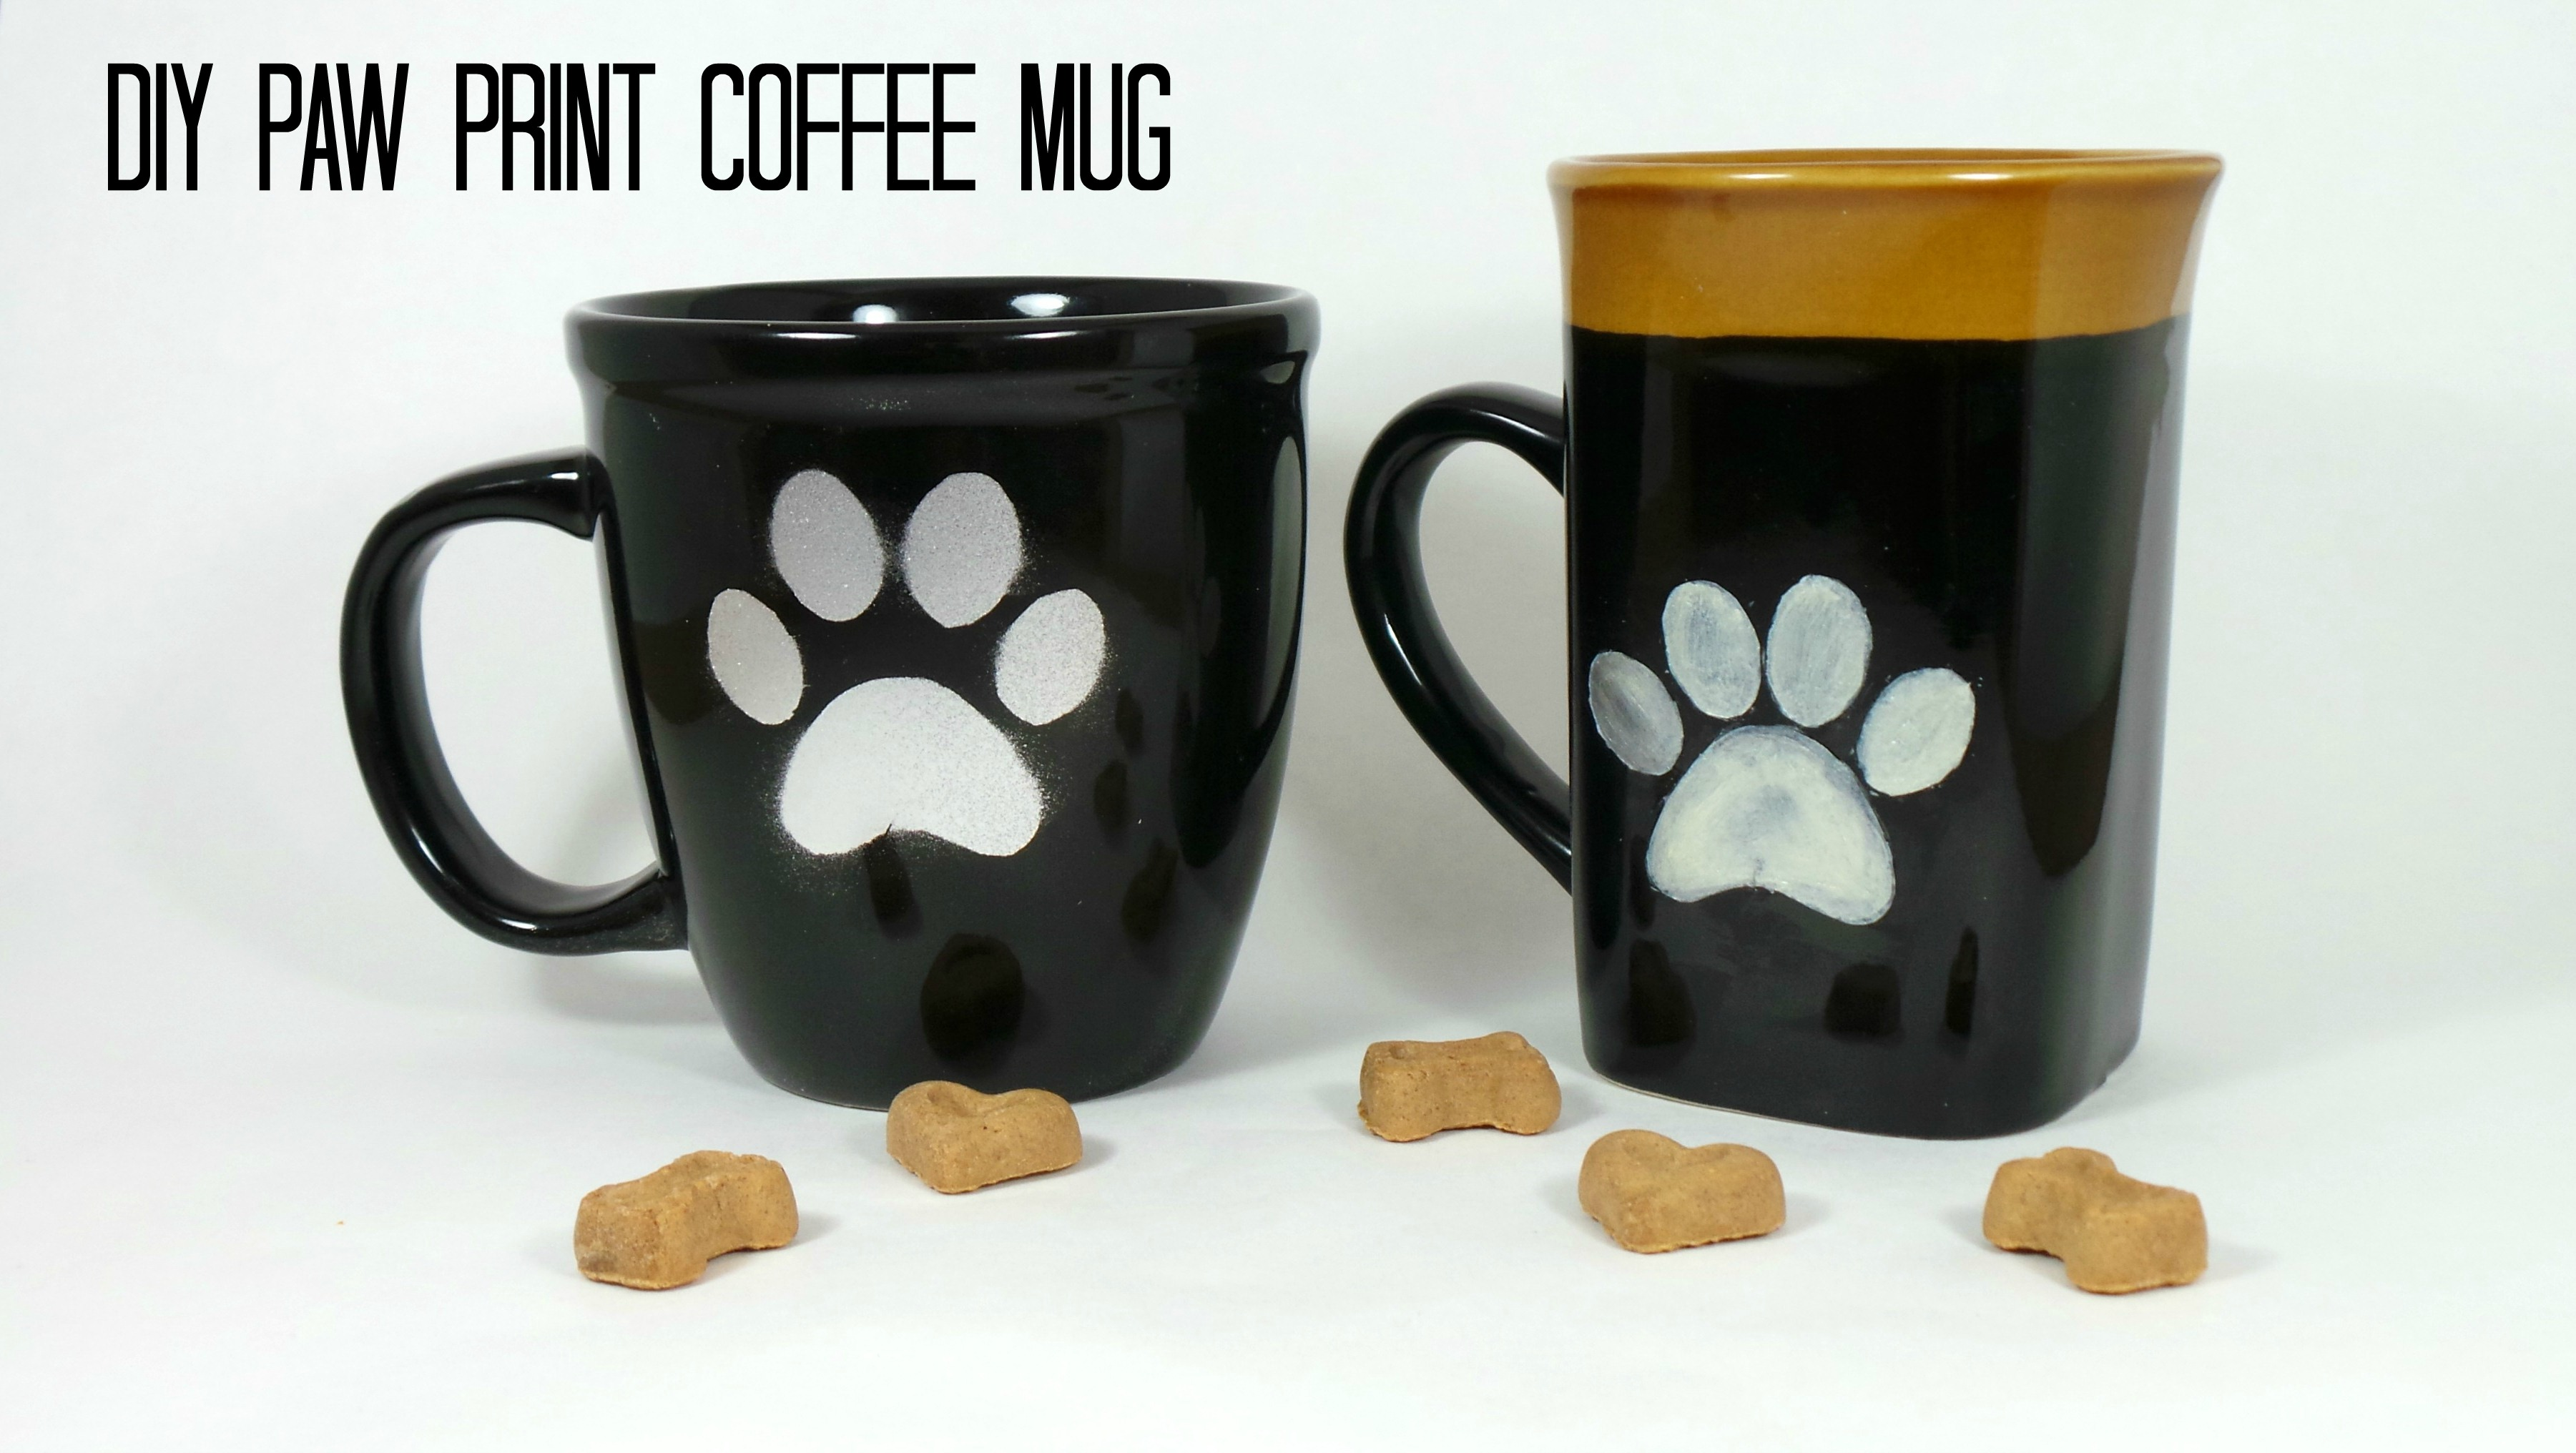 DIY-Paw-Print-Coffee-Mug-Tutorial.jpg